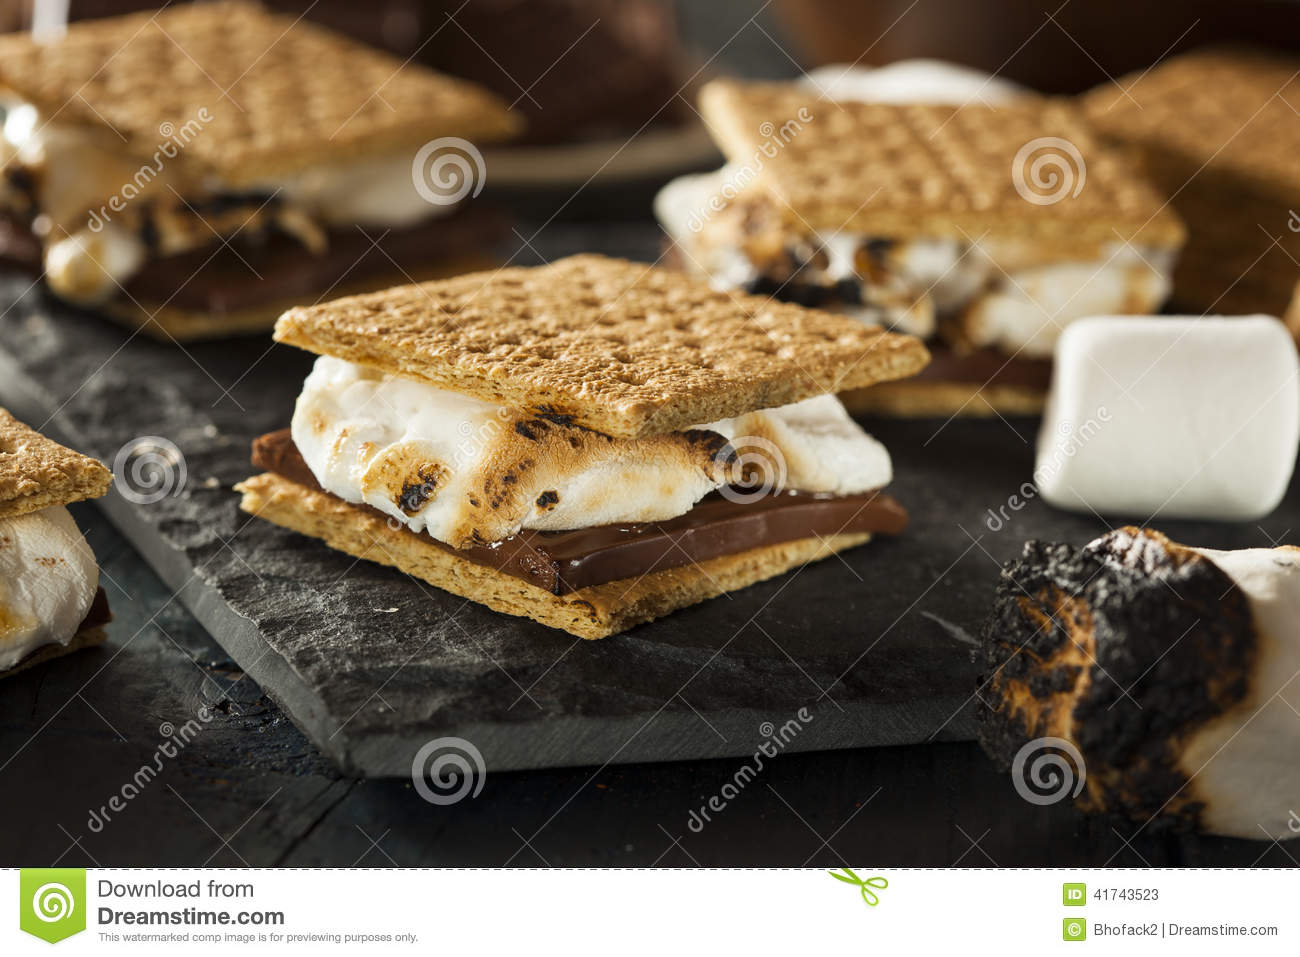 S mores with Marshmallows Chocolate and Graham Crackers